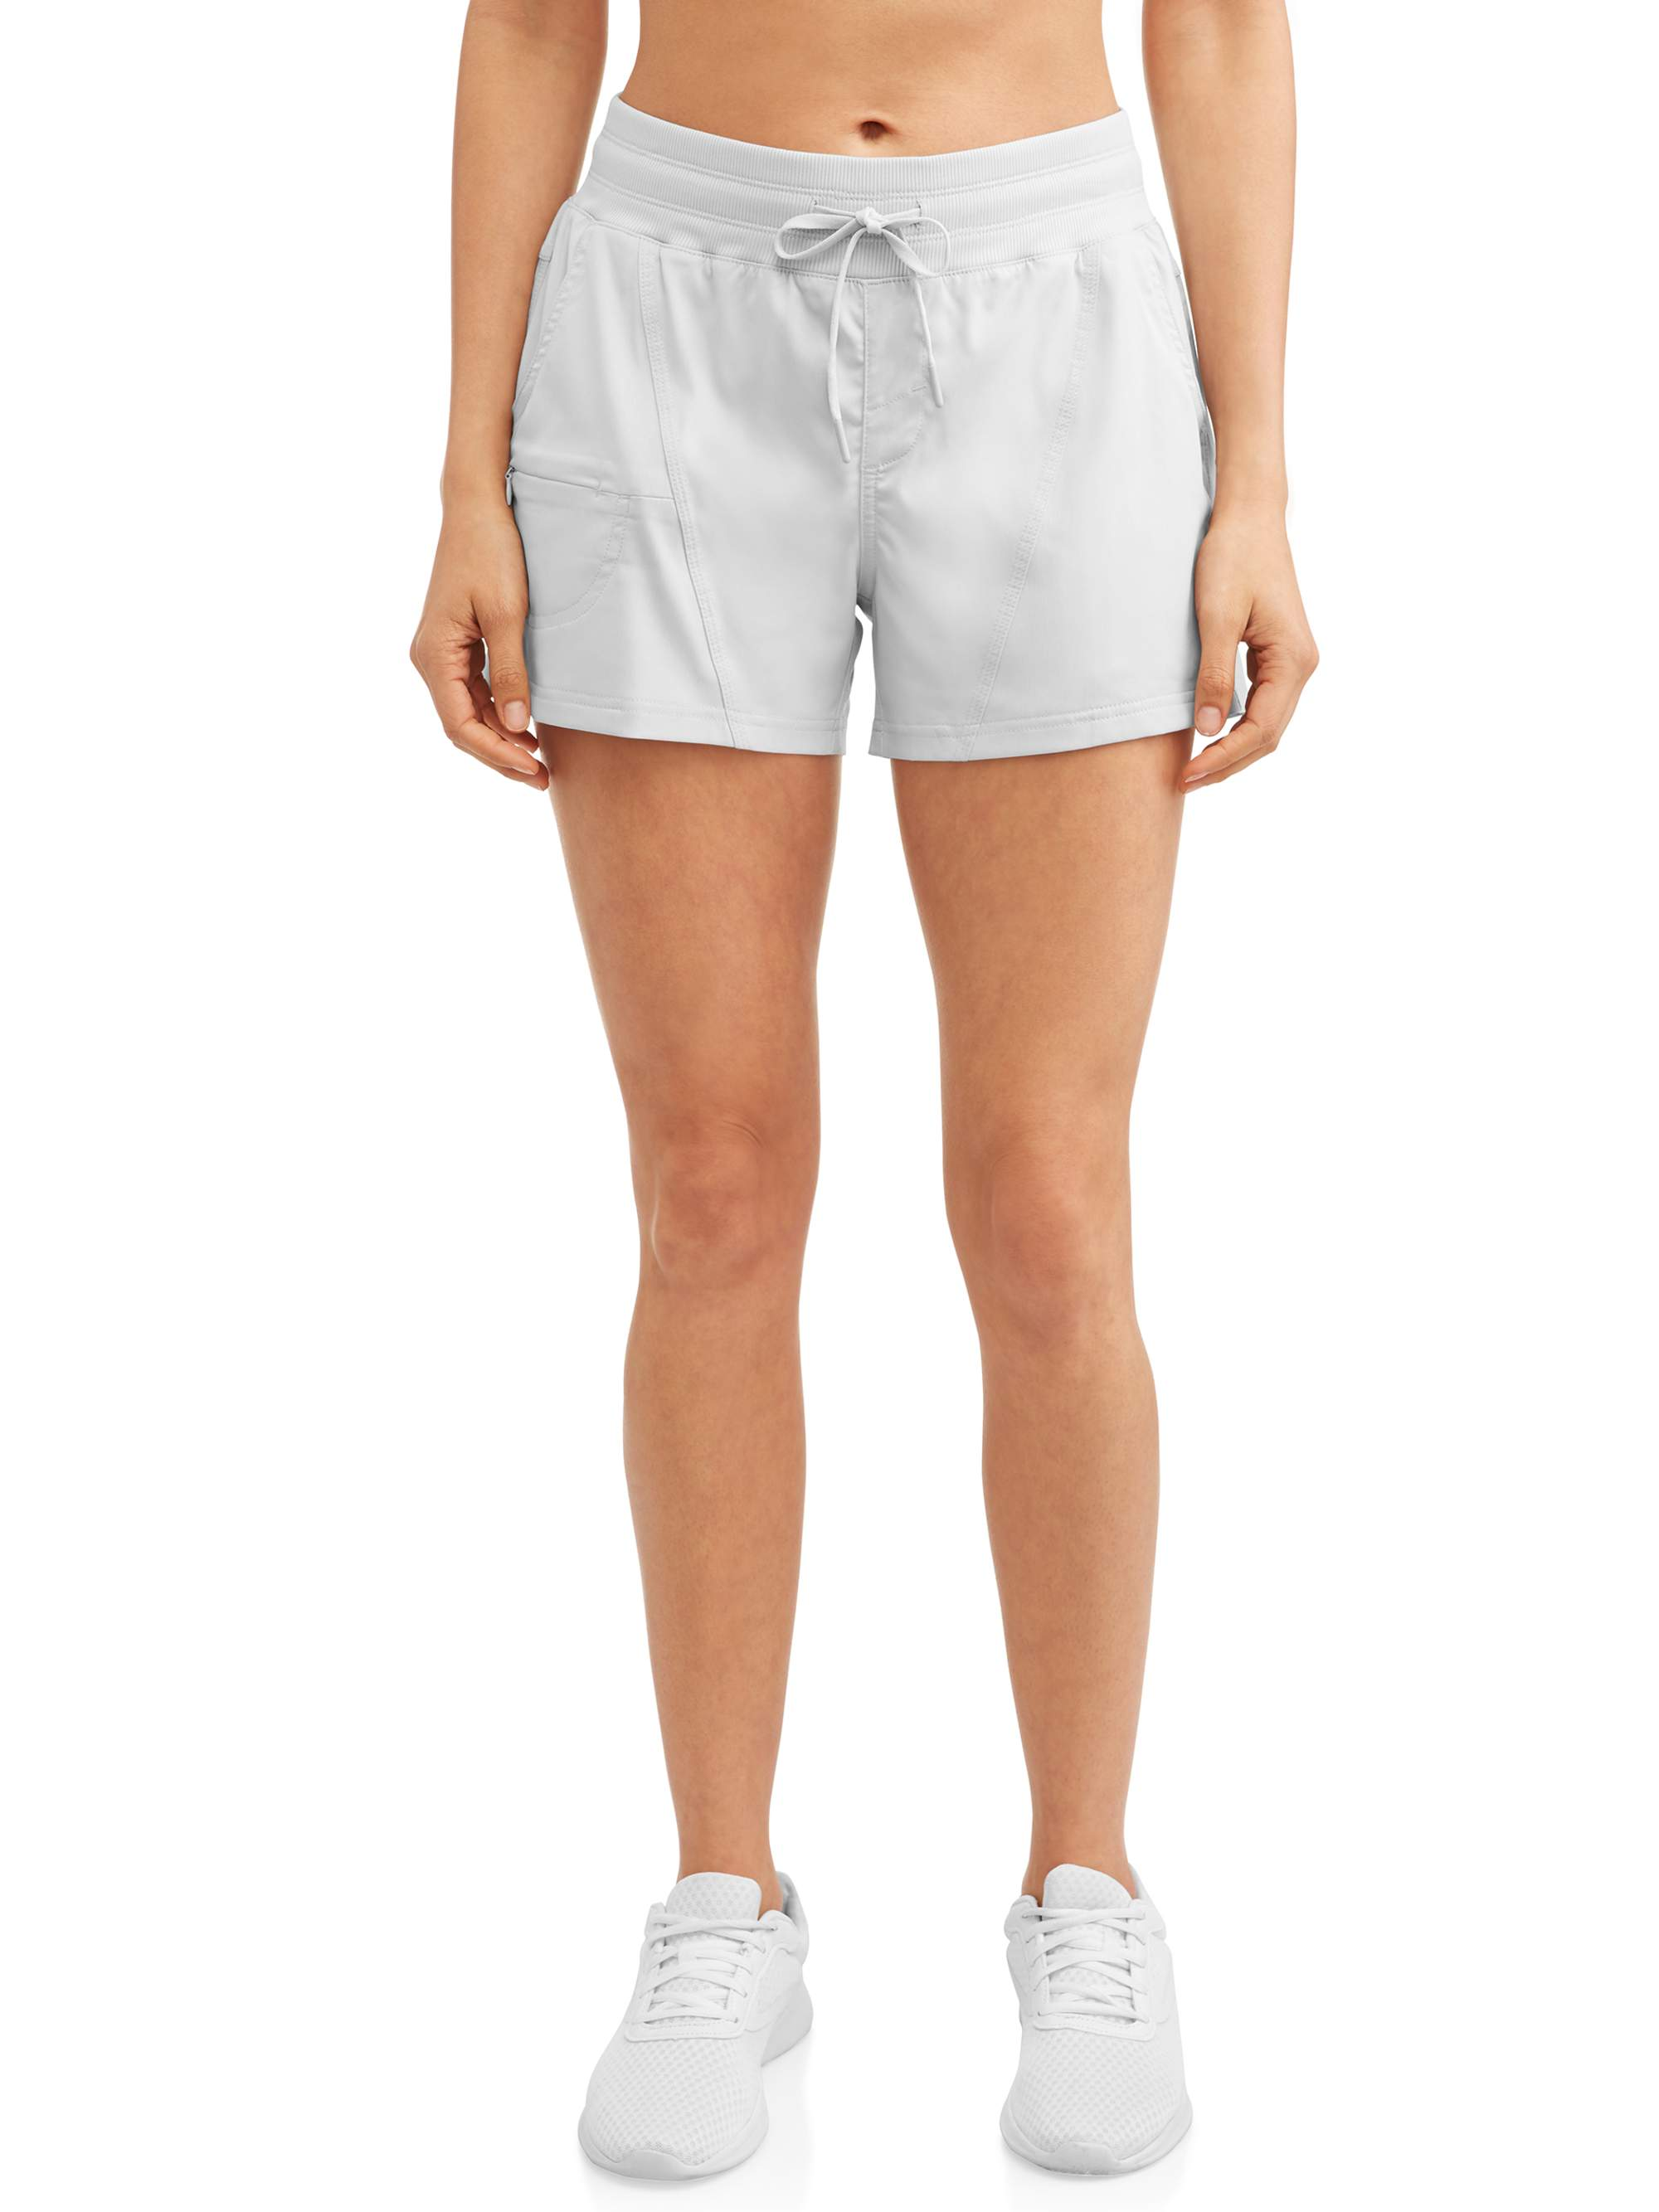 Women's Activewear Walking short